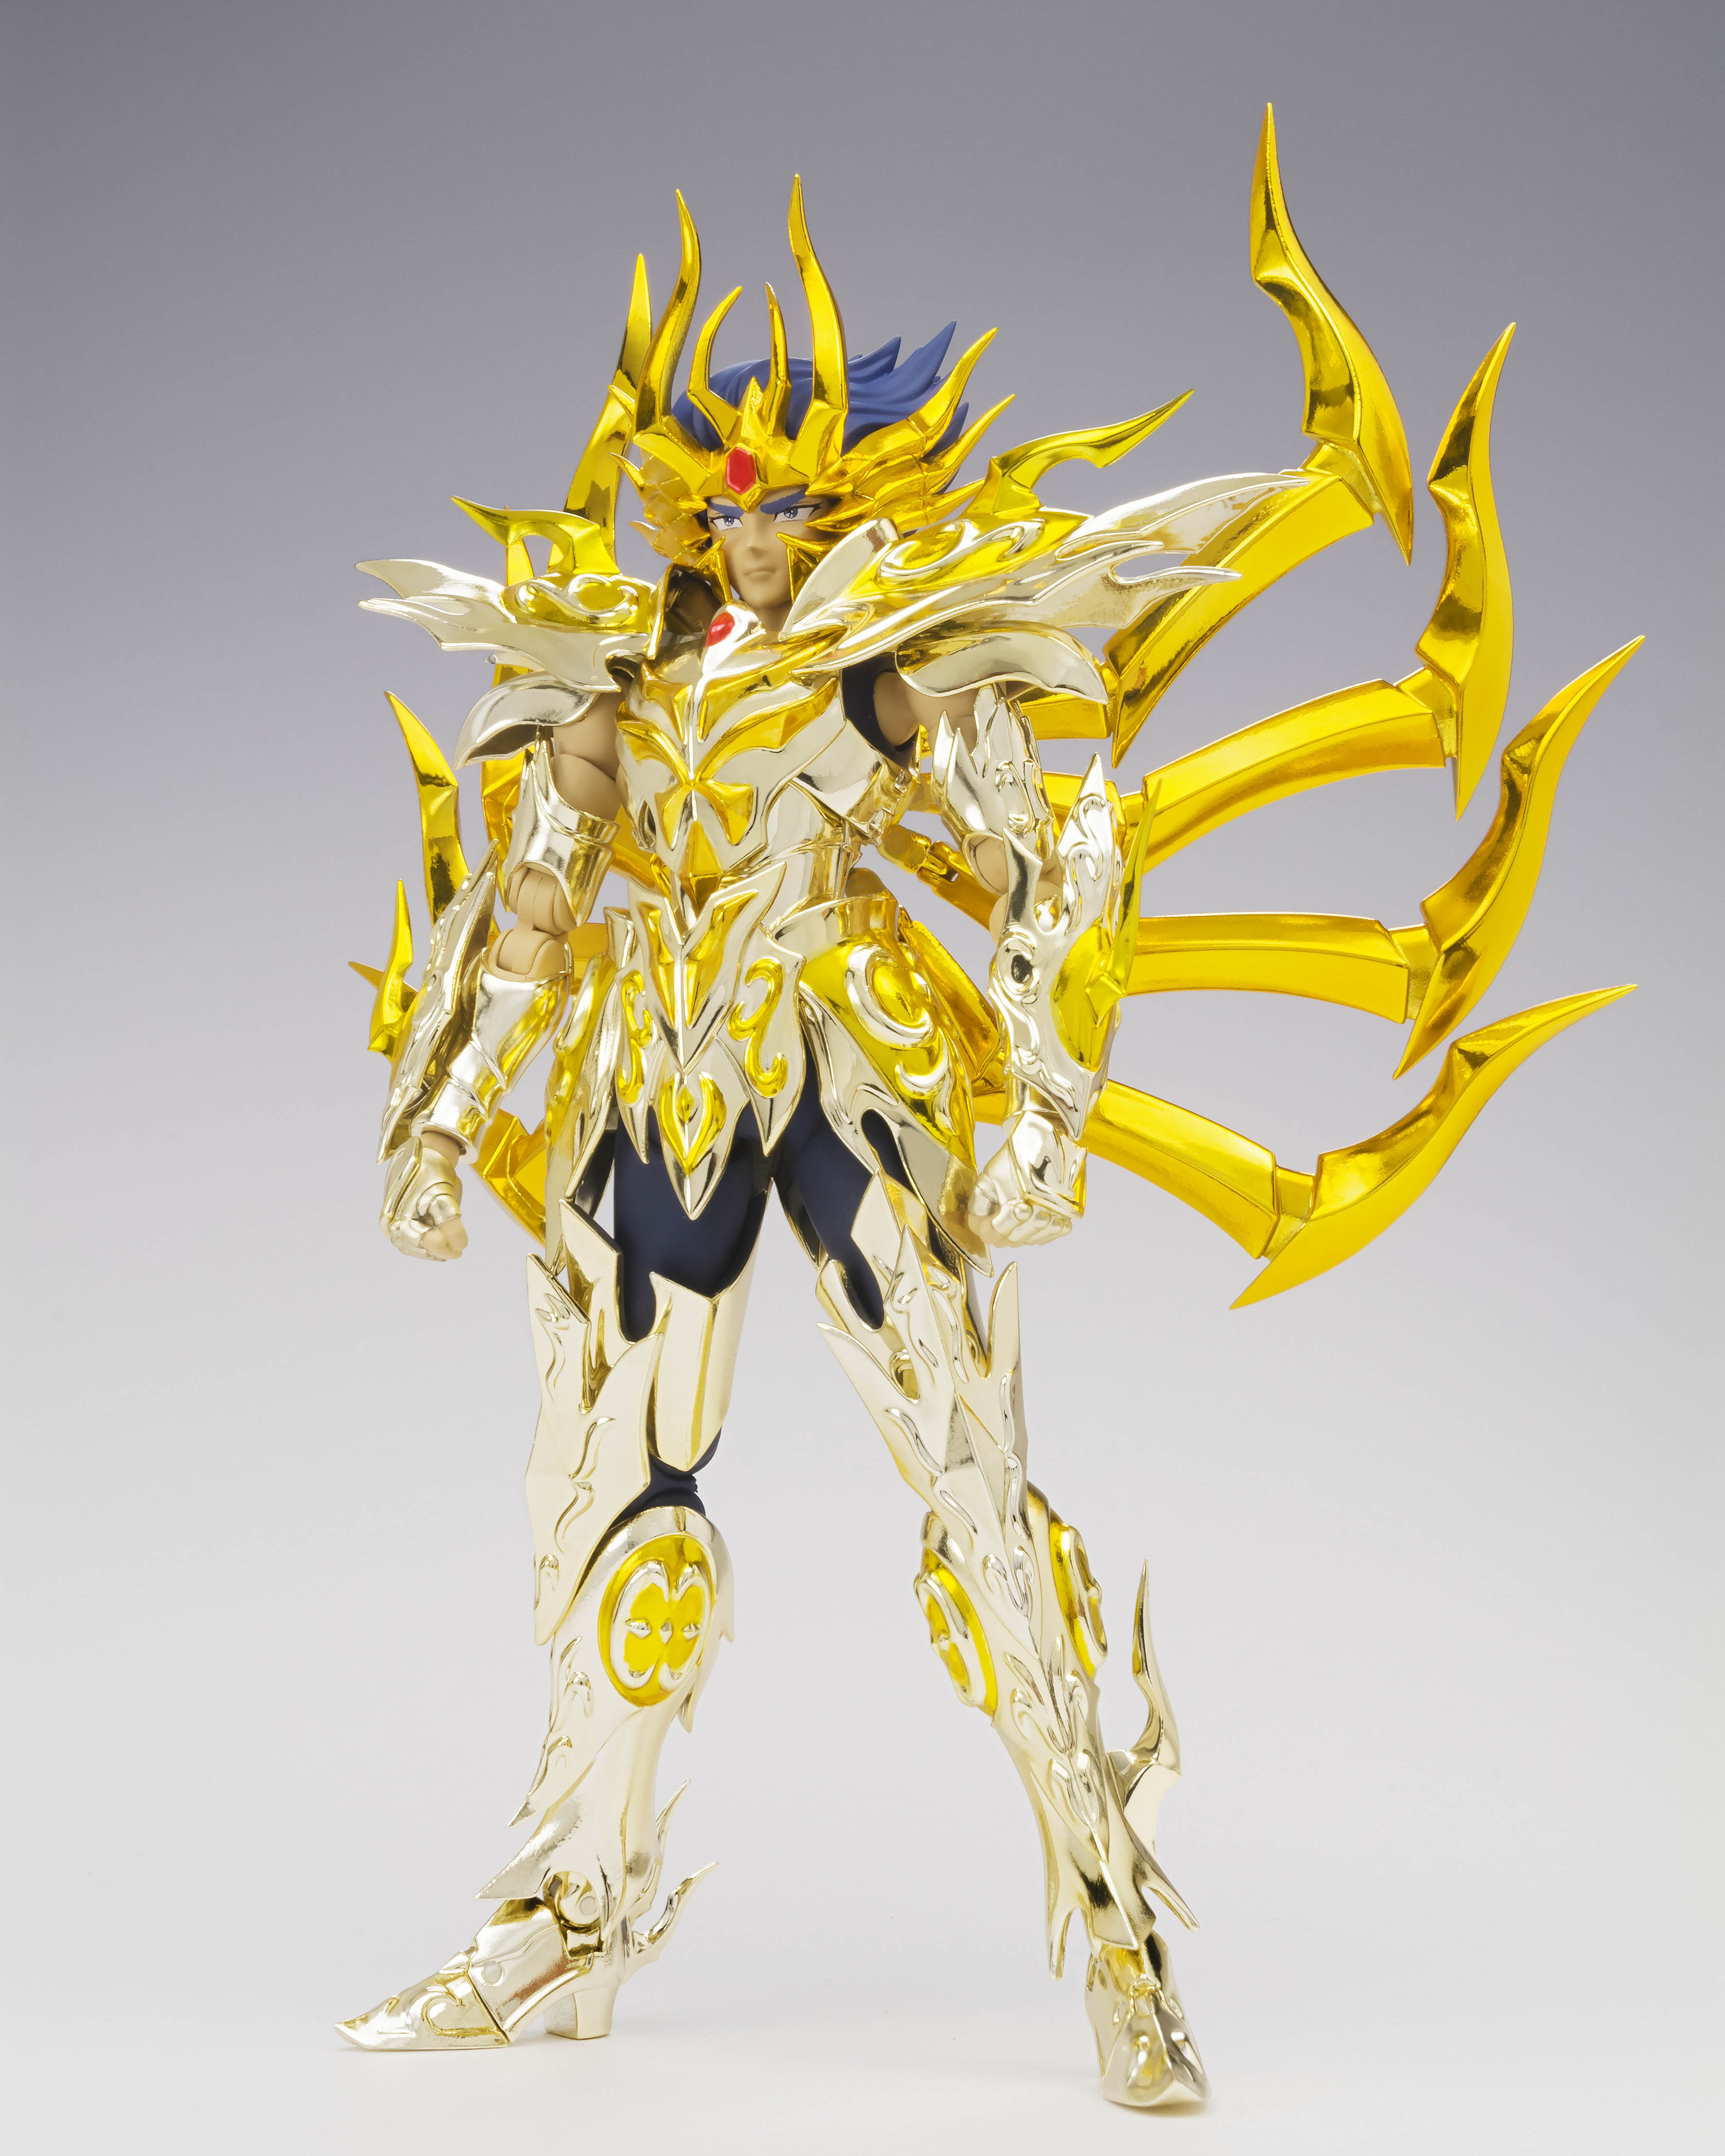 Myth cloth ex cancer death mask god cloth nz gundam store - Decor saint seiya myth cloth ...